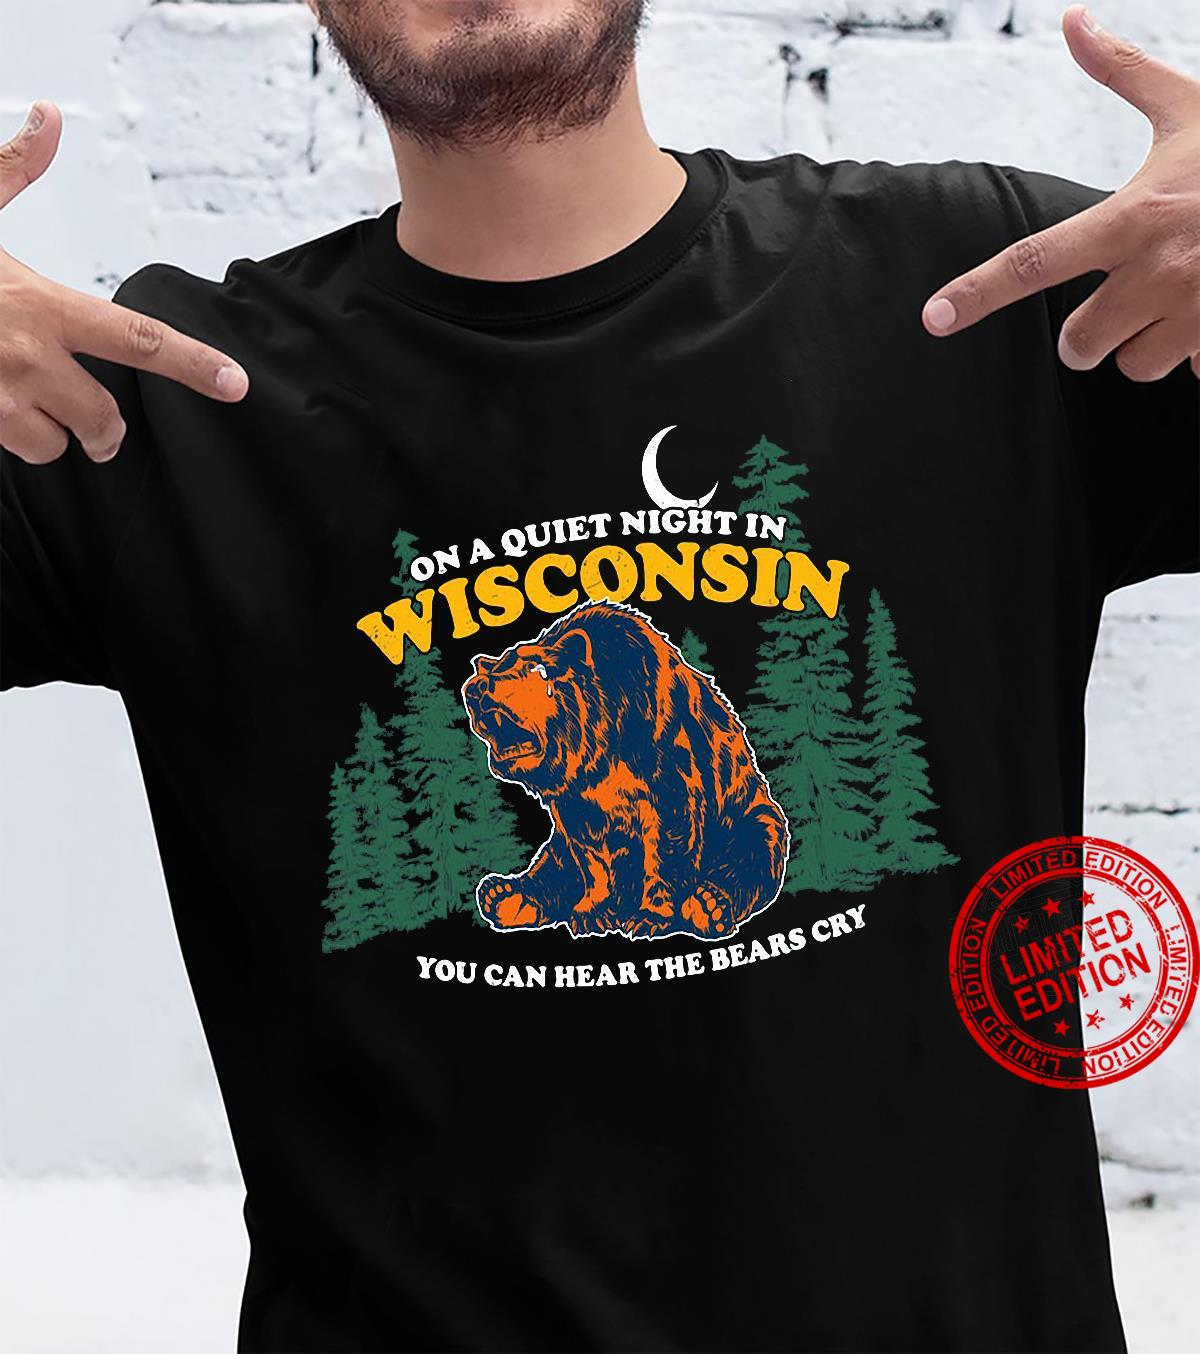 On A Quiet Night In Wisconsin You Can Hear The Bears Cry Men T-Shirt